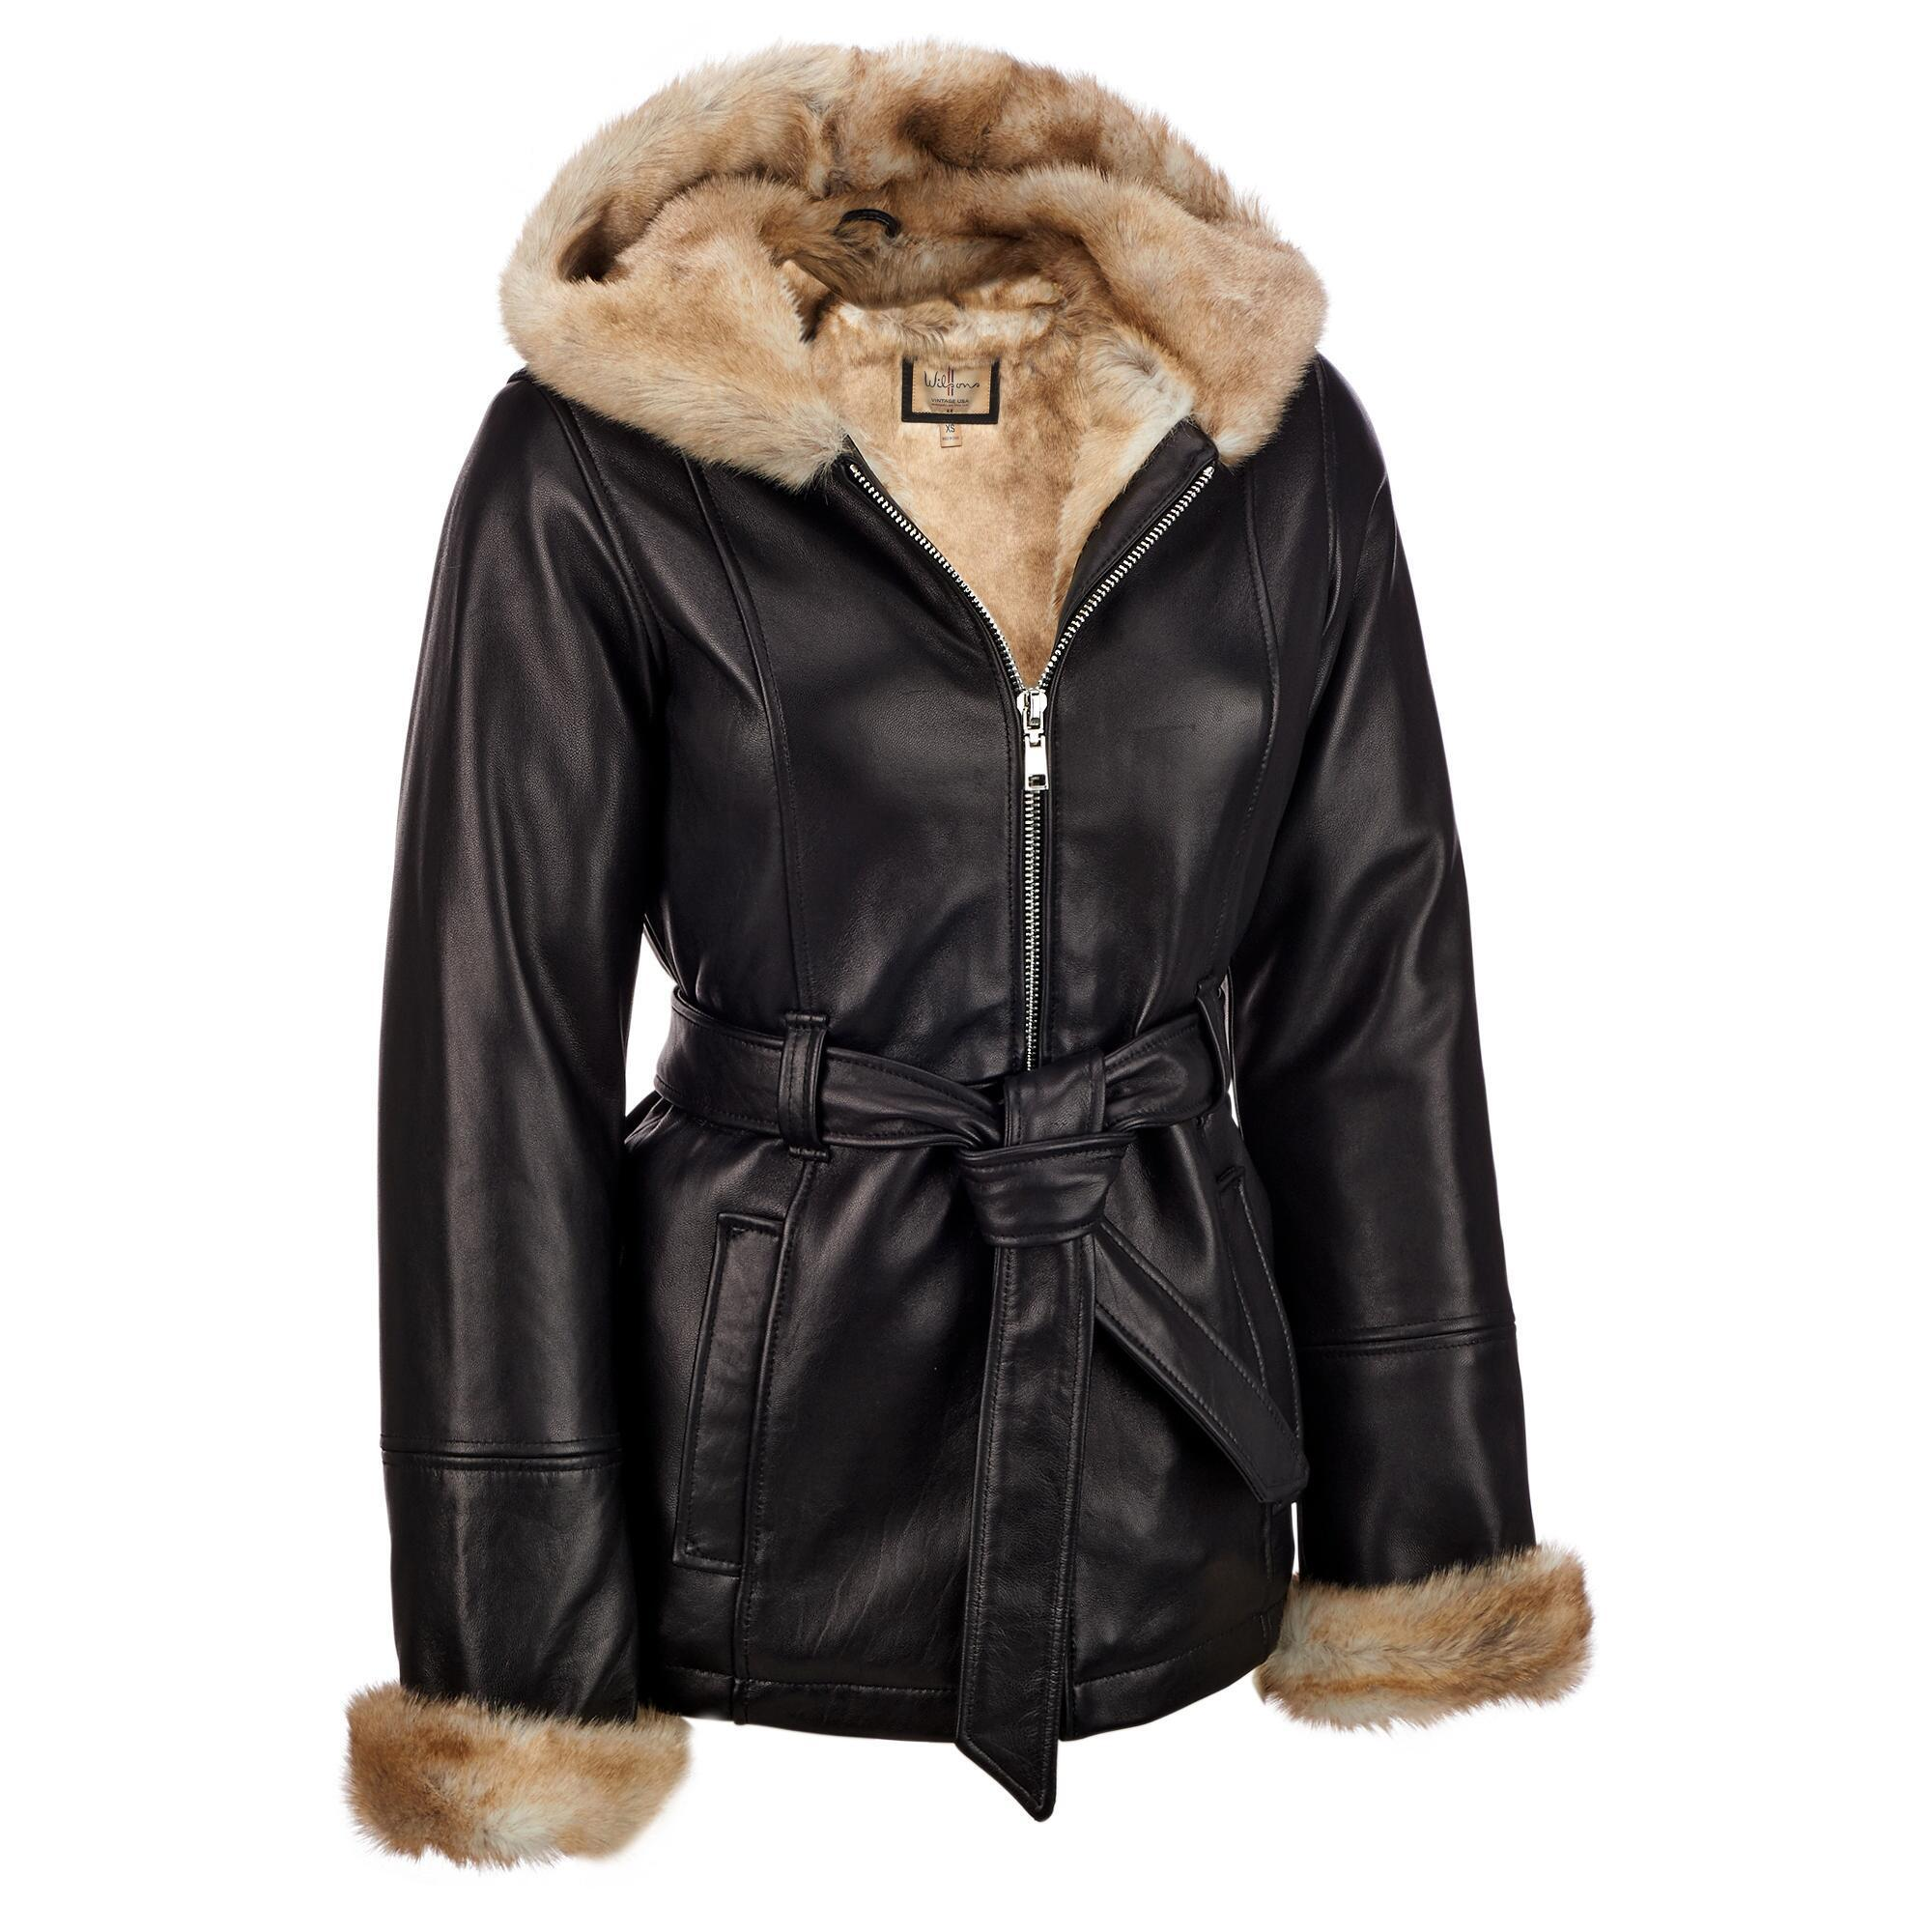 69d7ff6855f8c Wilsons Leather. Women s Black Plus Size Vintage Belted Leather Jacket W   Faux-fur Lining